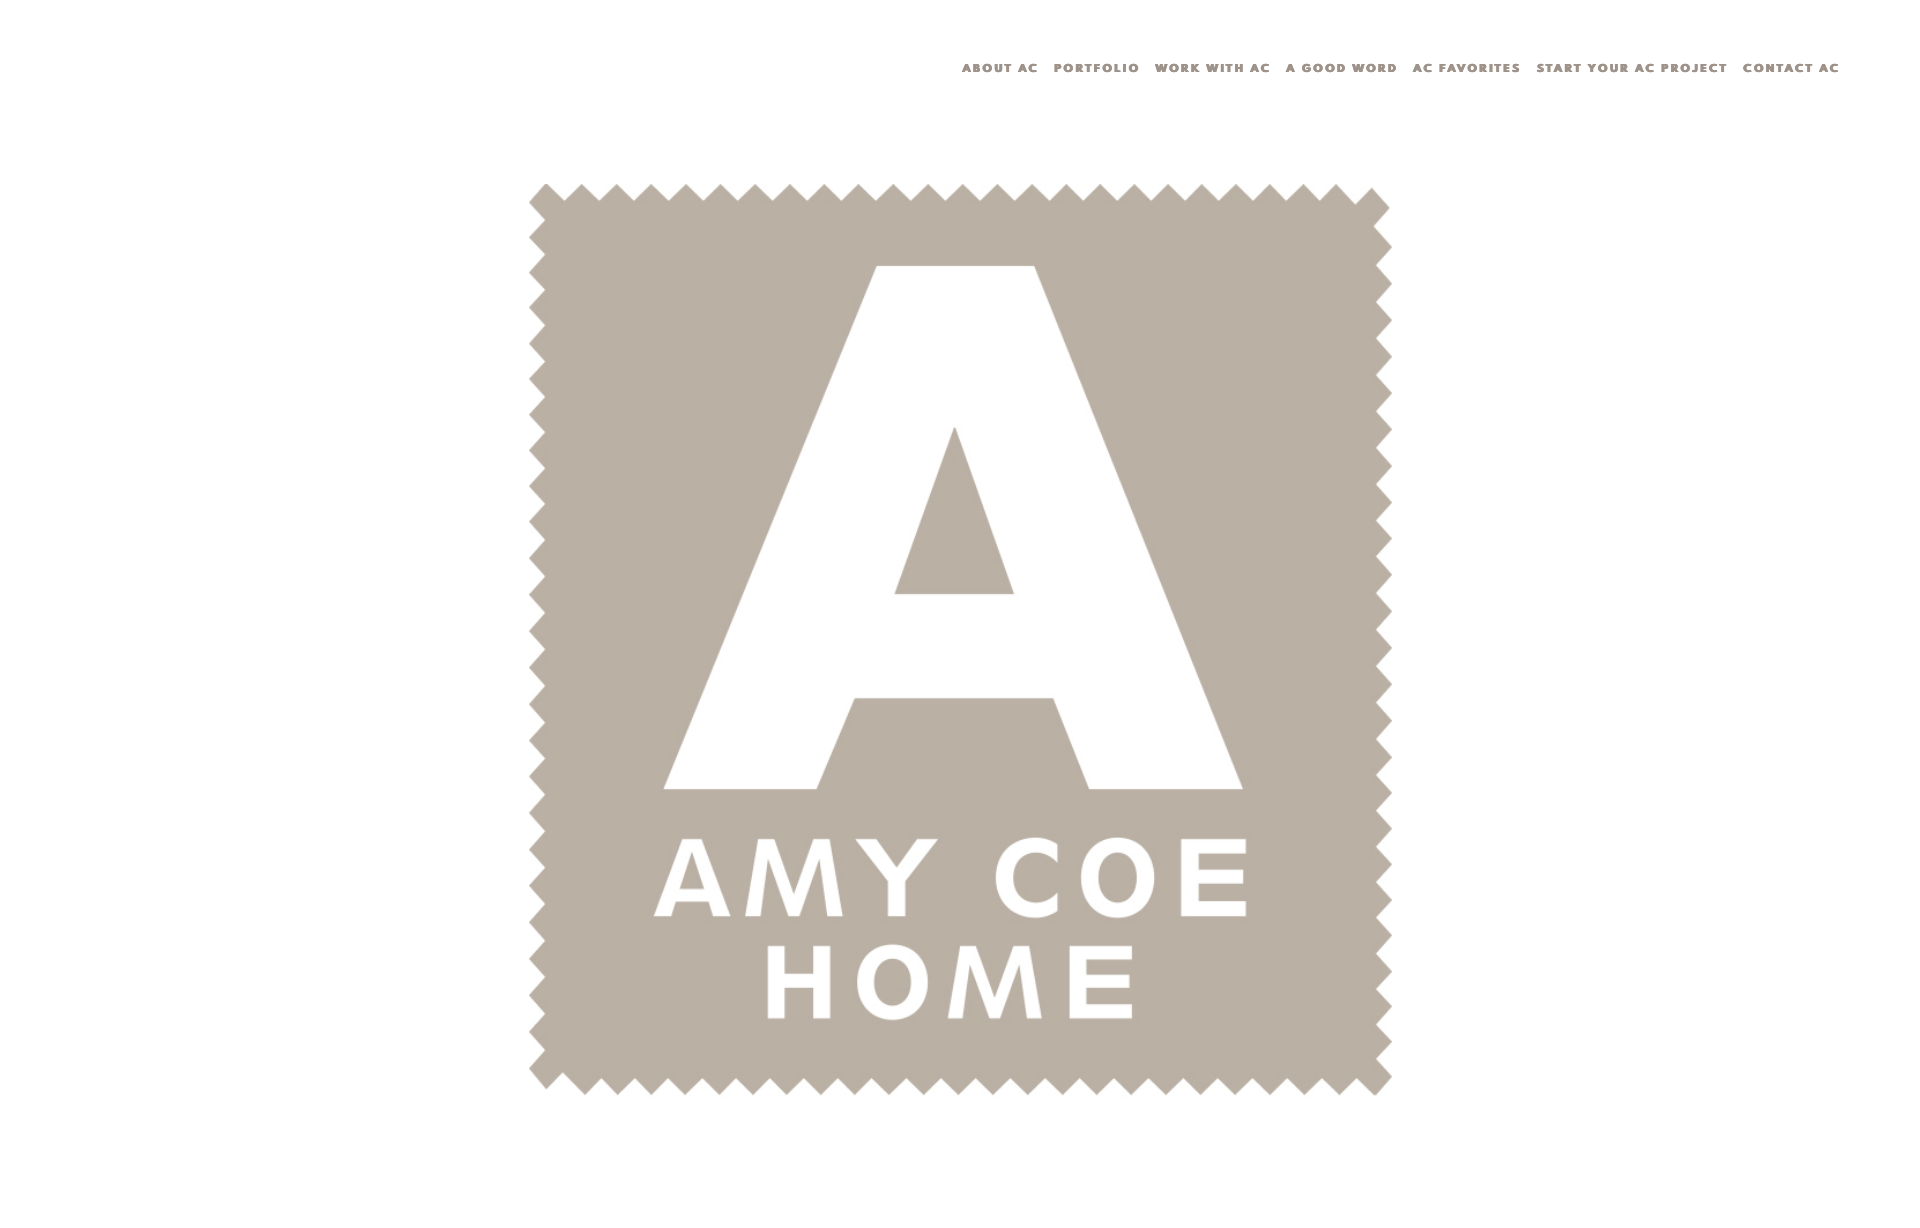 AMY COE HOME.png